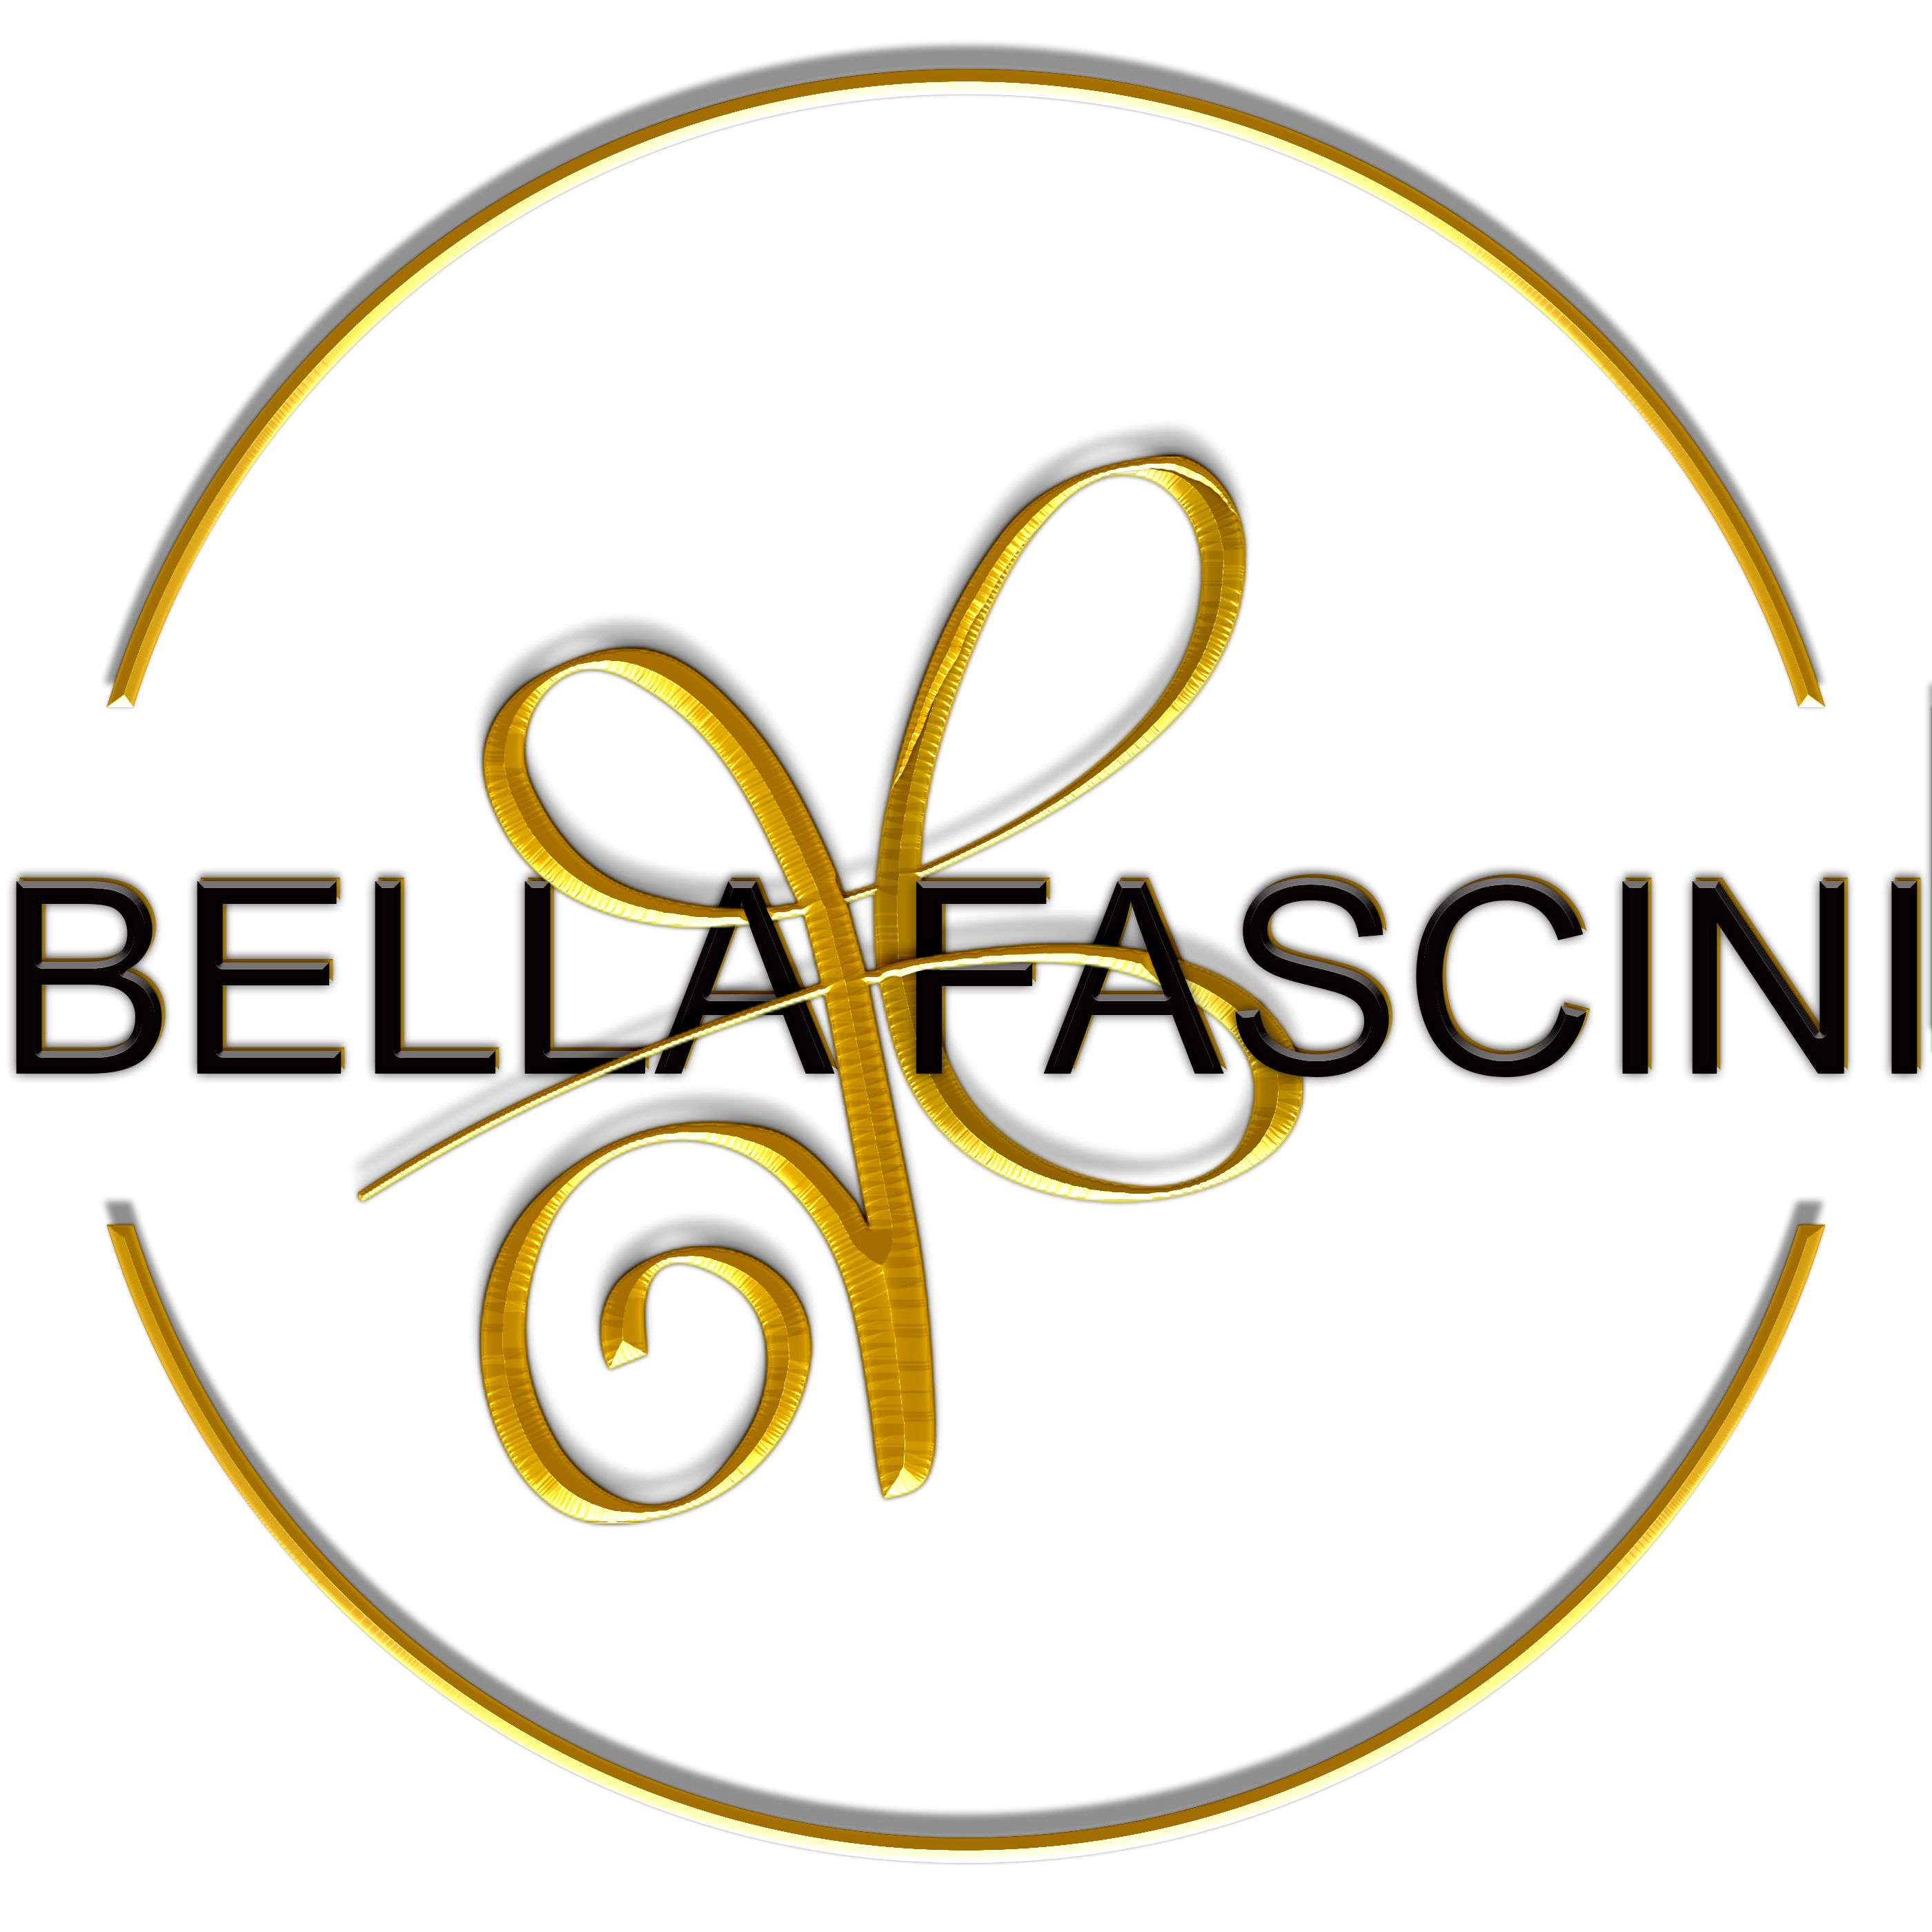 bella fascini